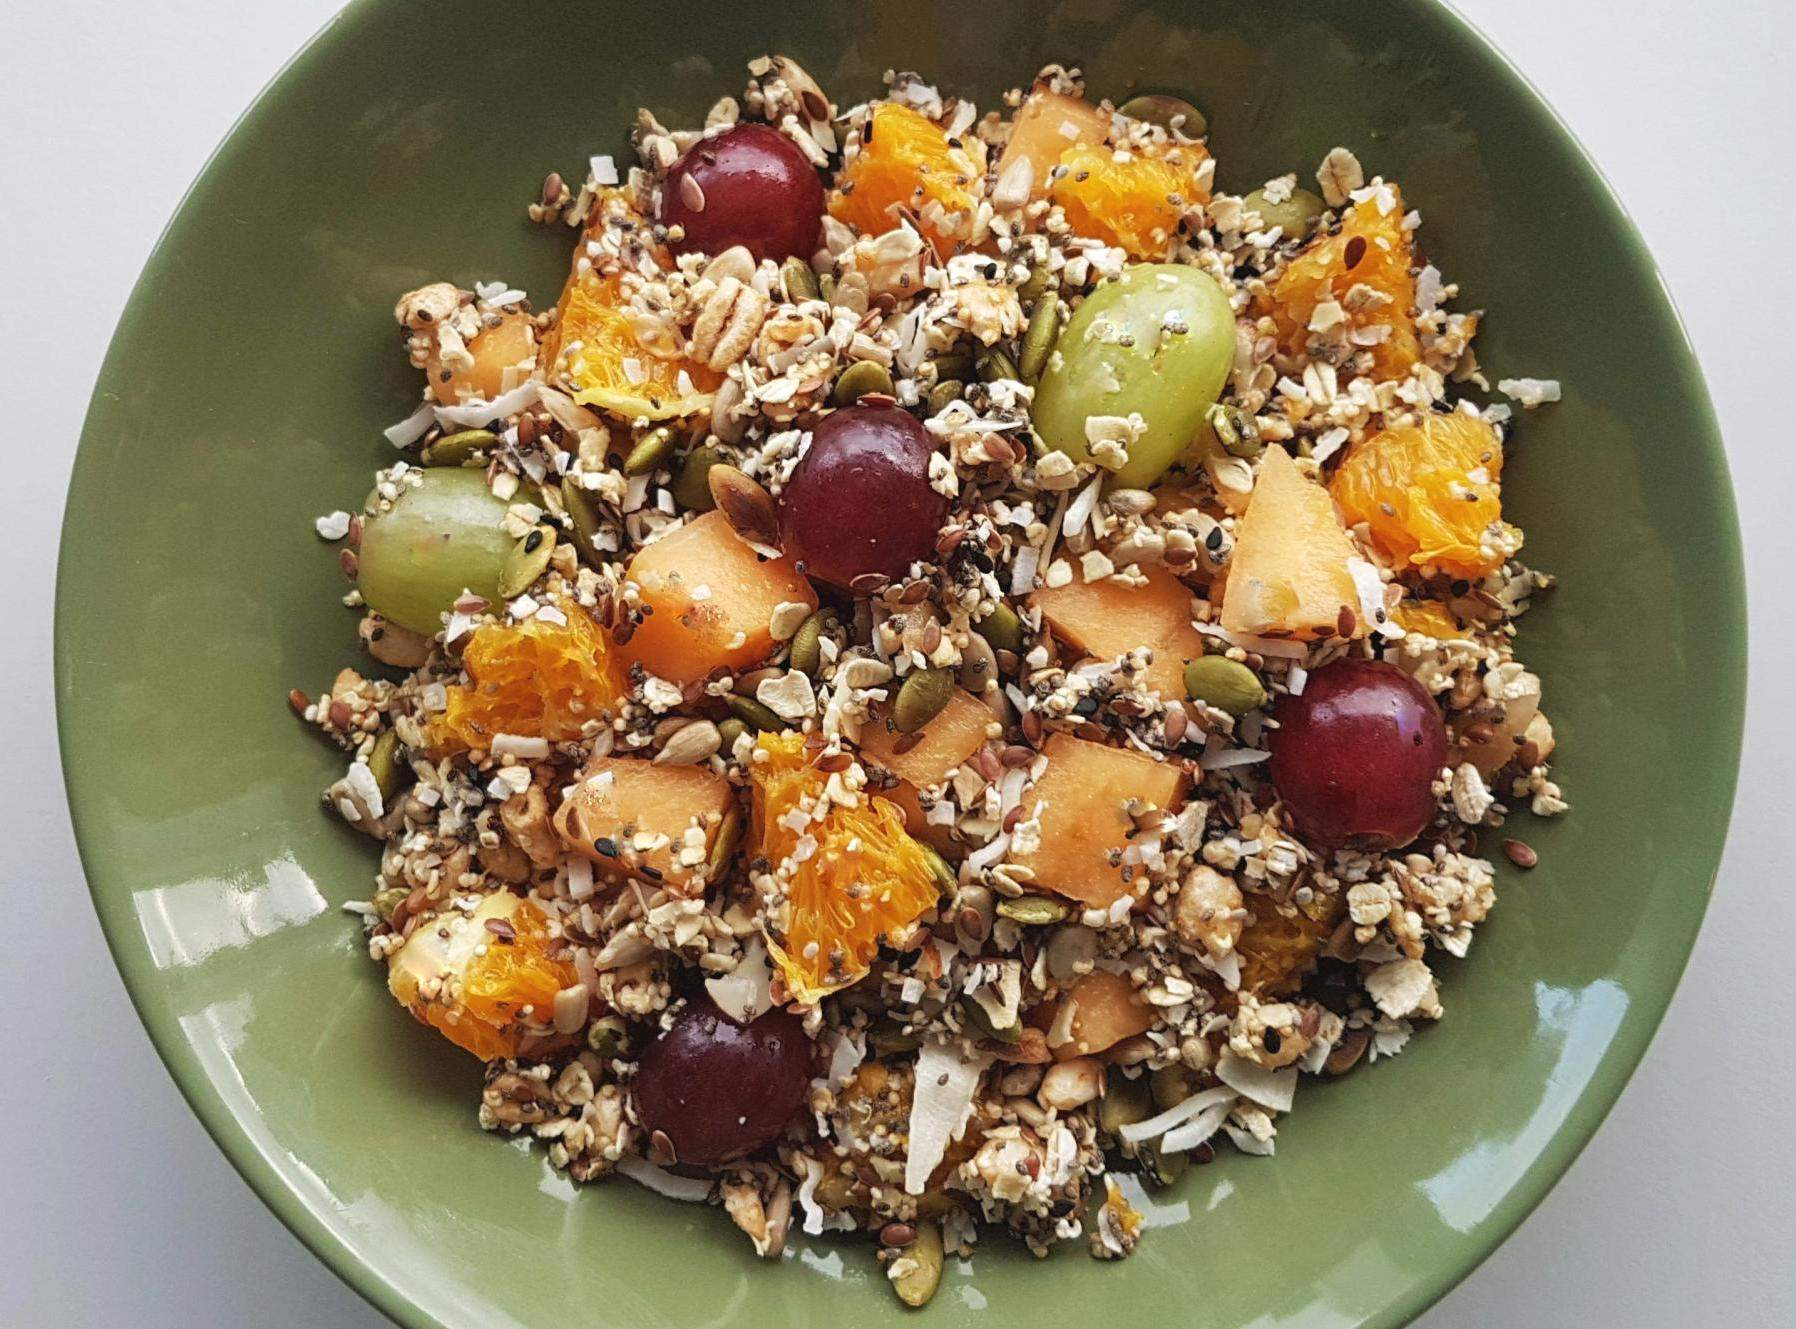 Home-made muesli with fresh fruit mixed in